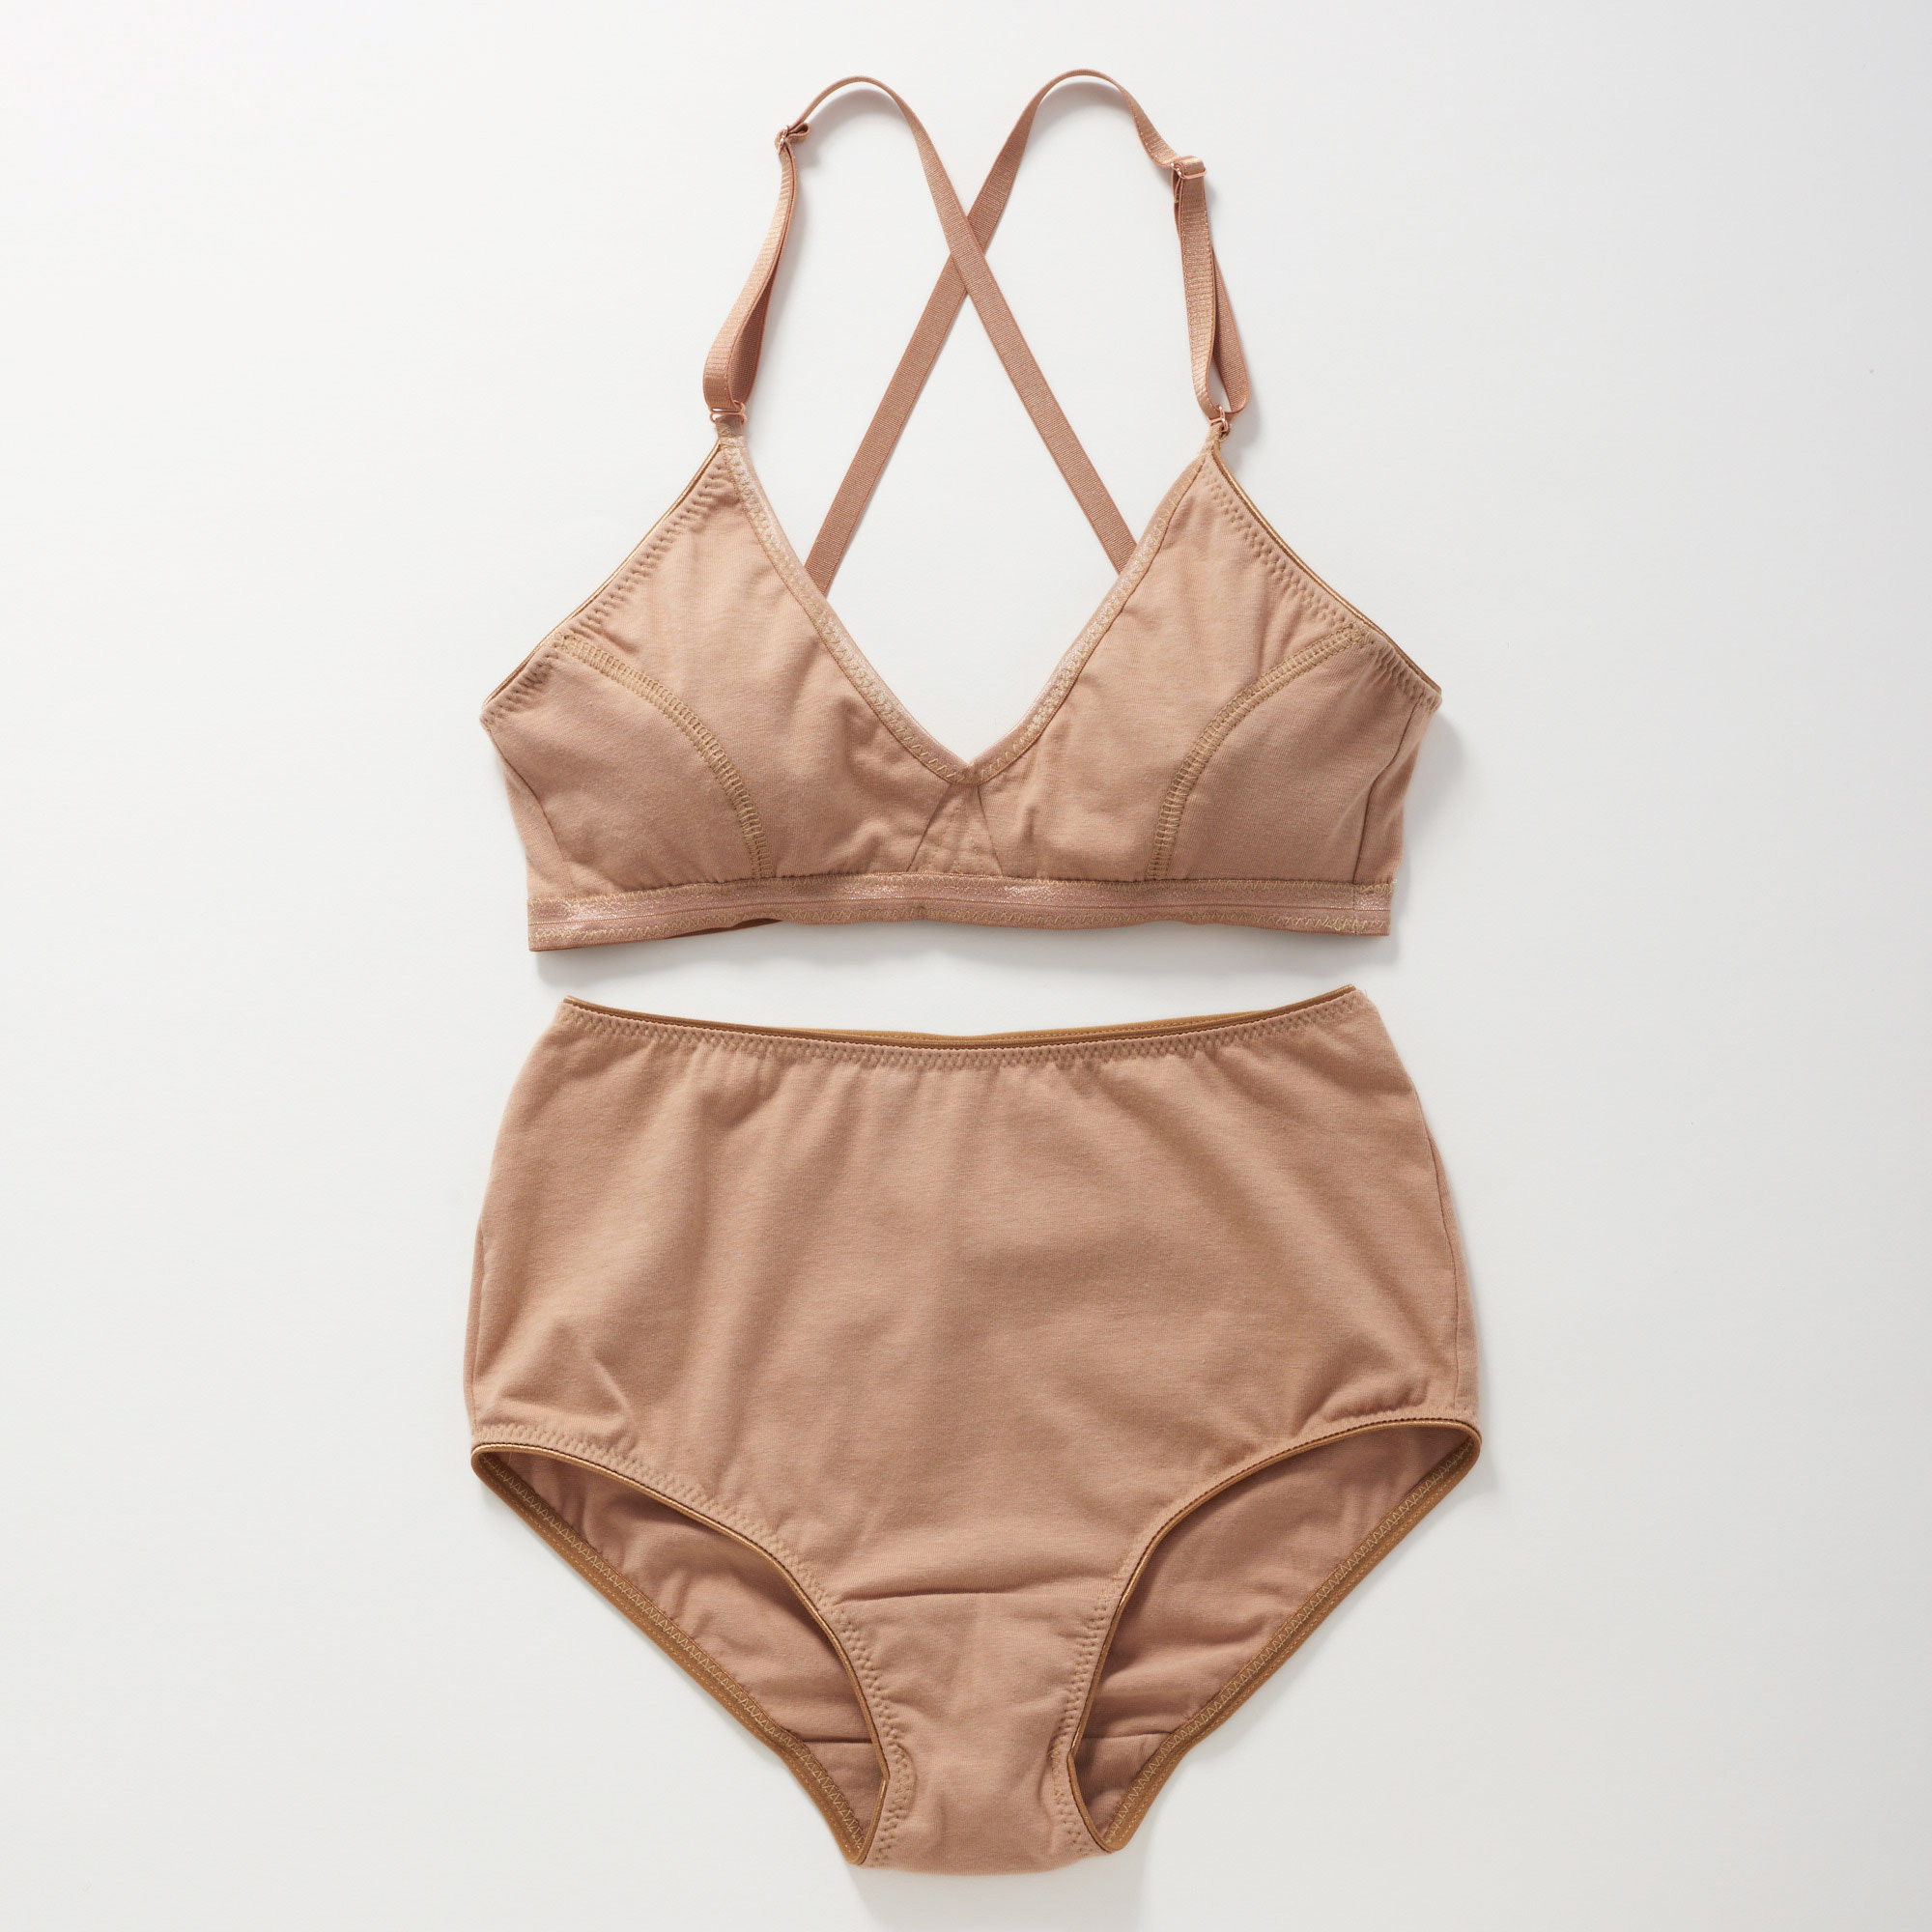 c88143076dd0 Brook There's Organic Cotton Undergarments Are Instilling Confidence ...